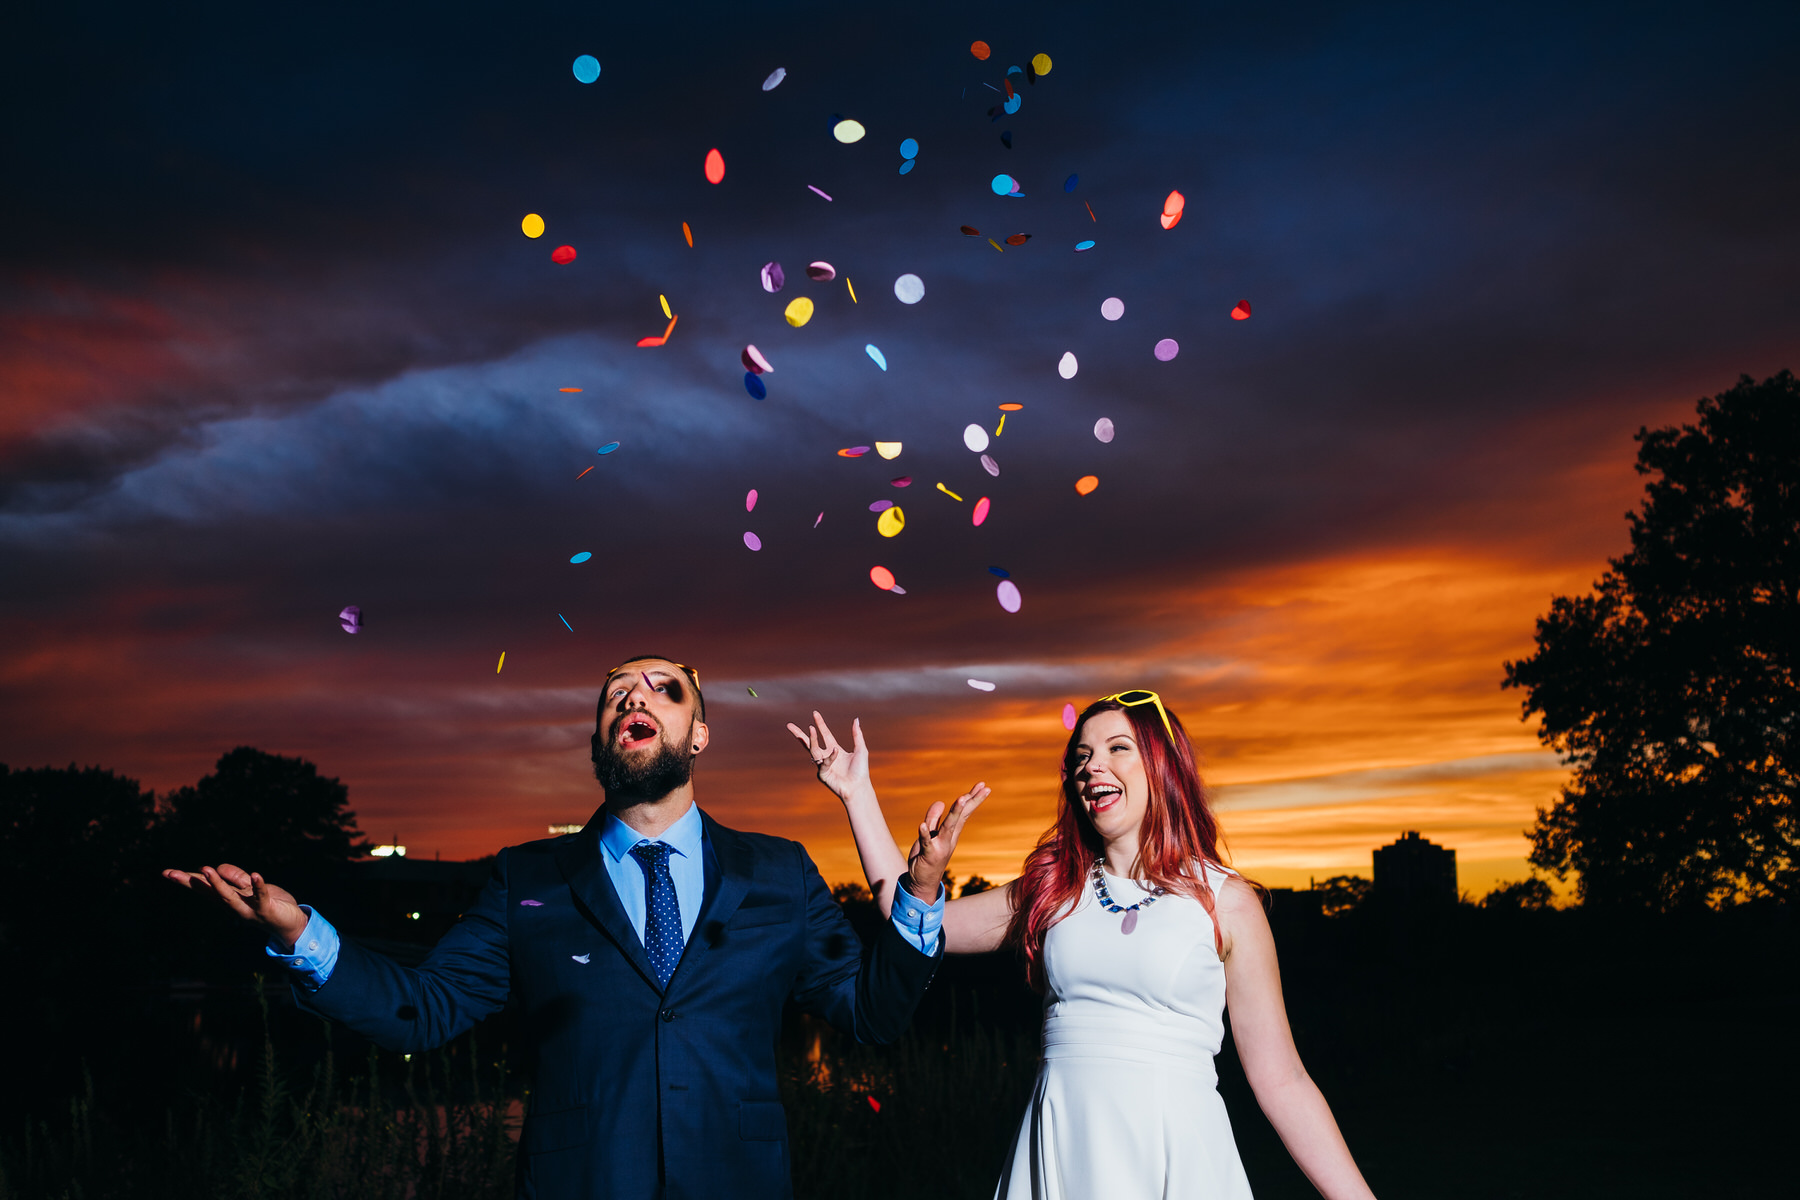 colorful-engagement-creative-confetti-0006.JPG